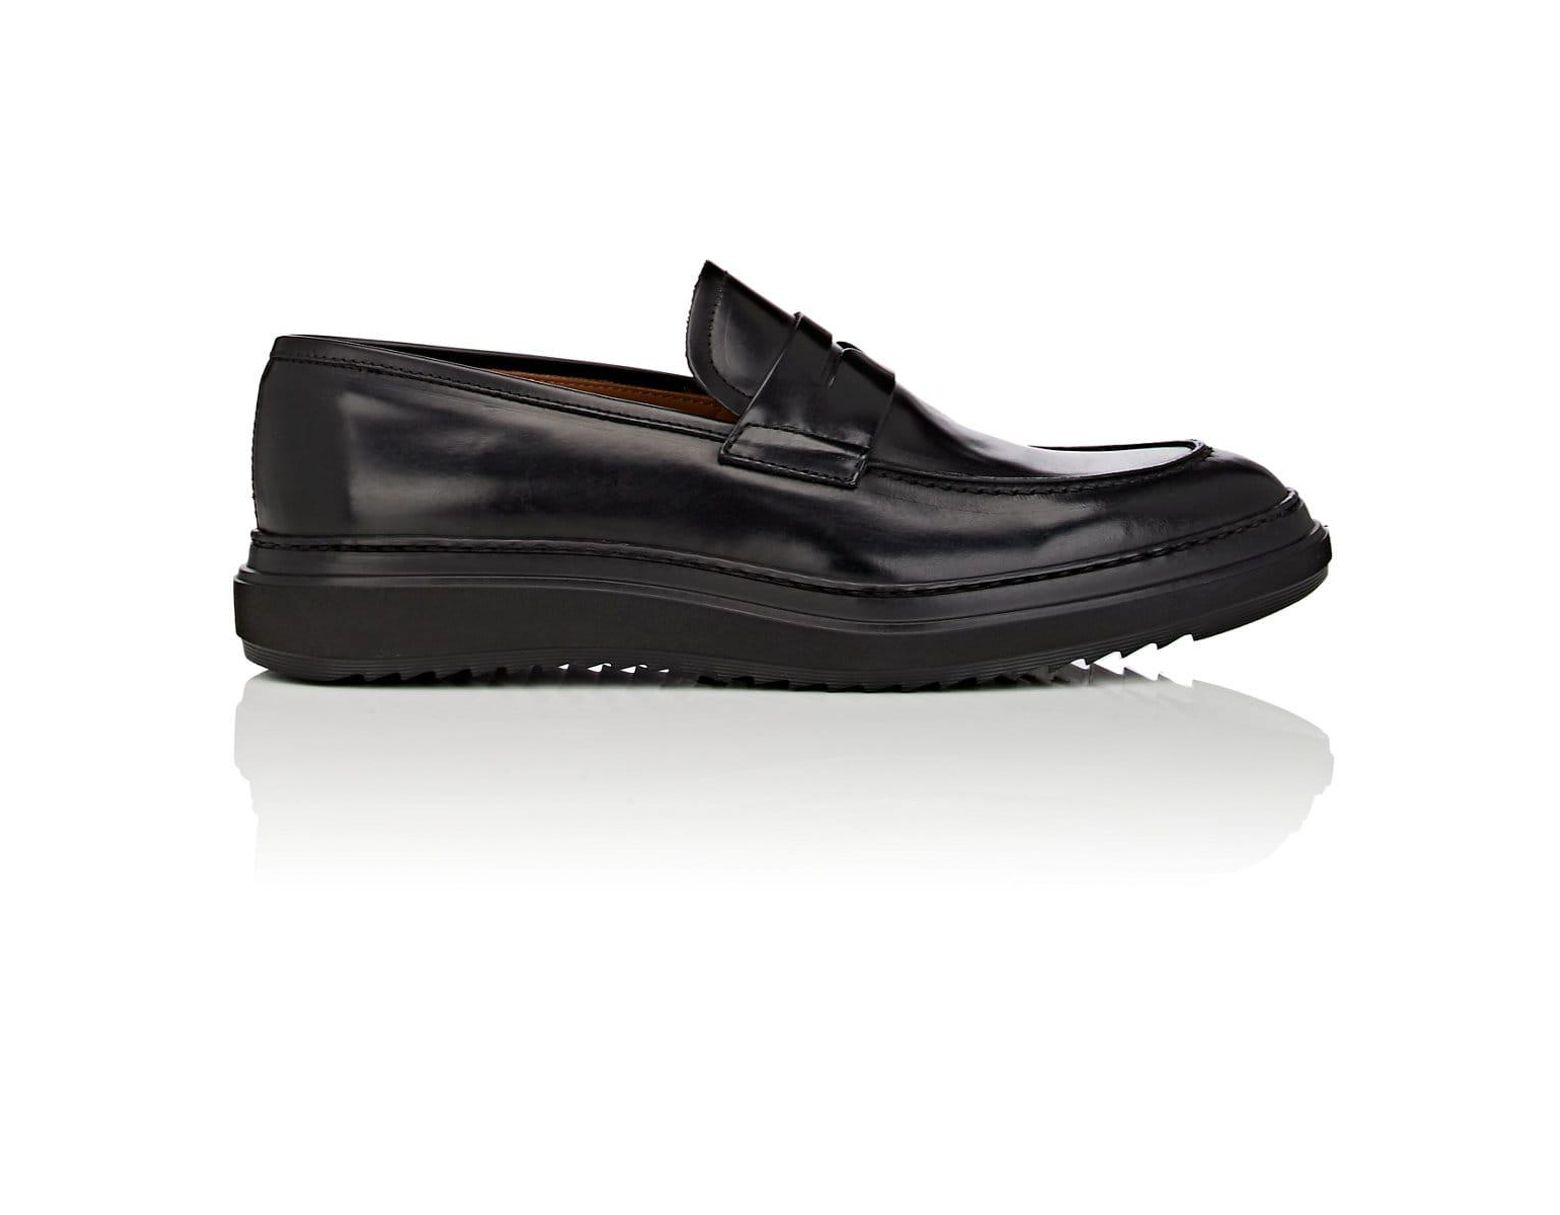 273256ddfdd88 Barneys New York Wedge-sole Suede Penny Loafers in Black for Men - Lyst